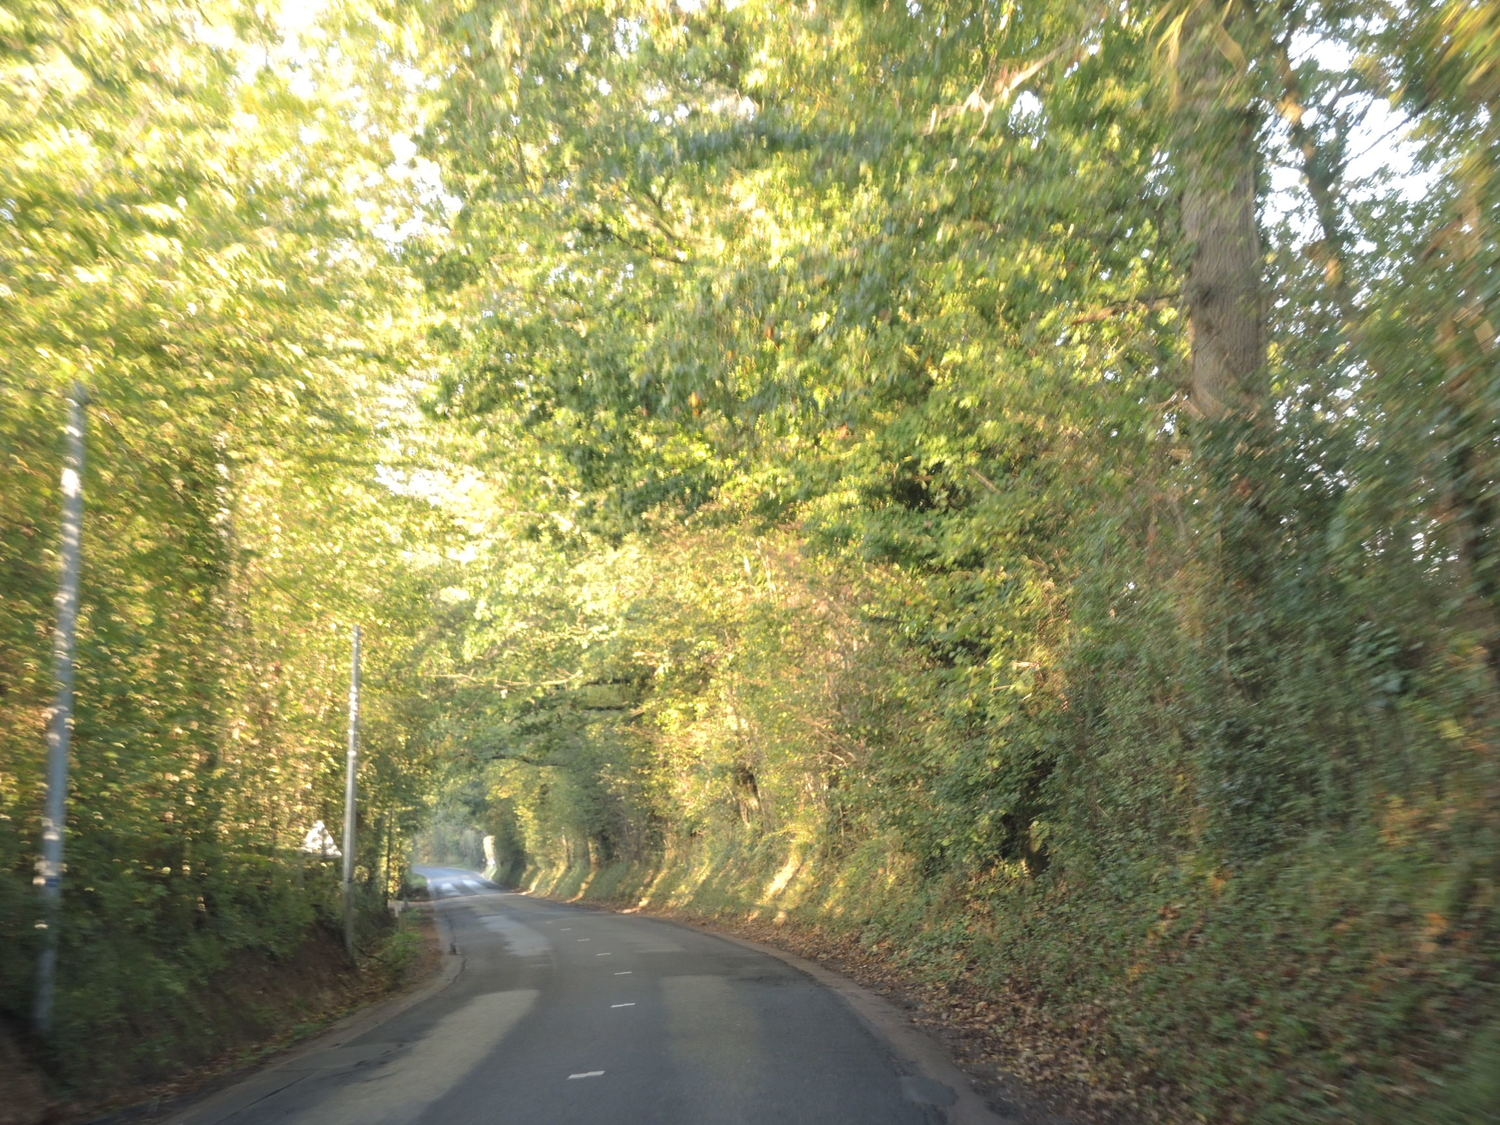 Travelling around Normandy by car